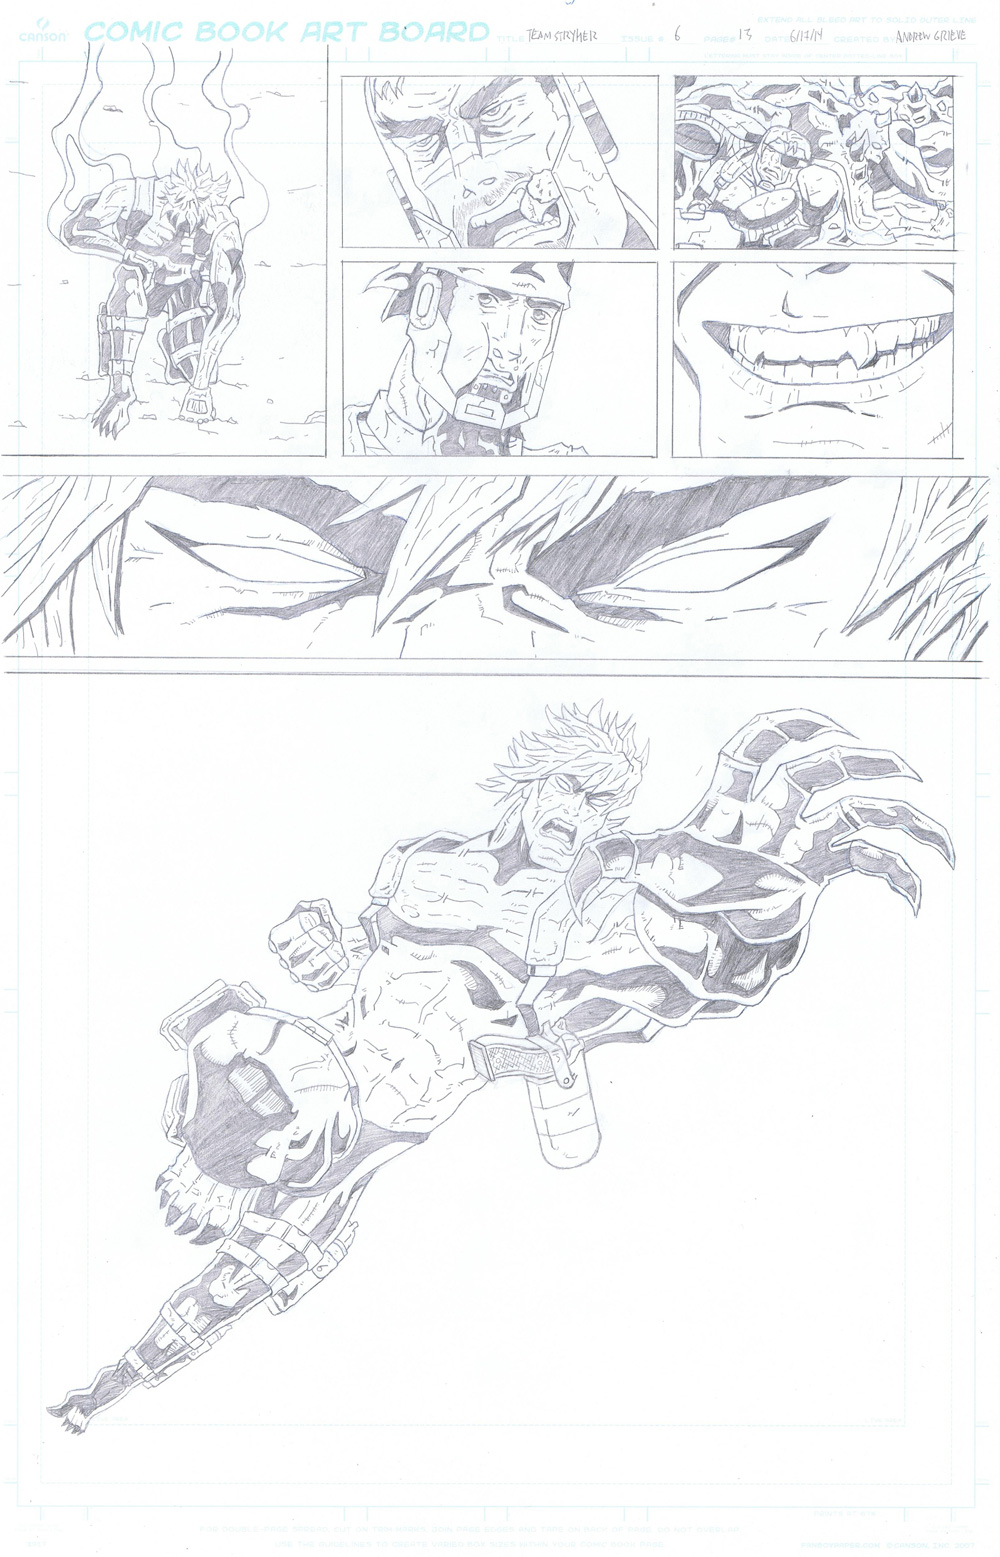 MISSION 006: PAGE 13 PENCIL